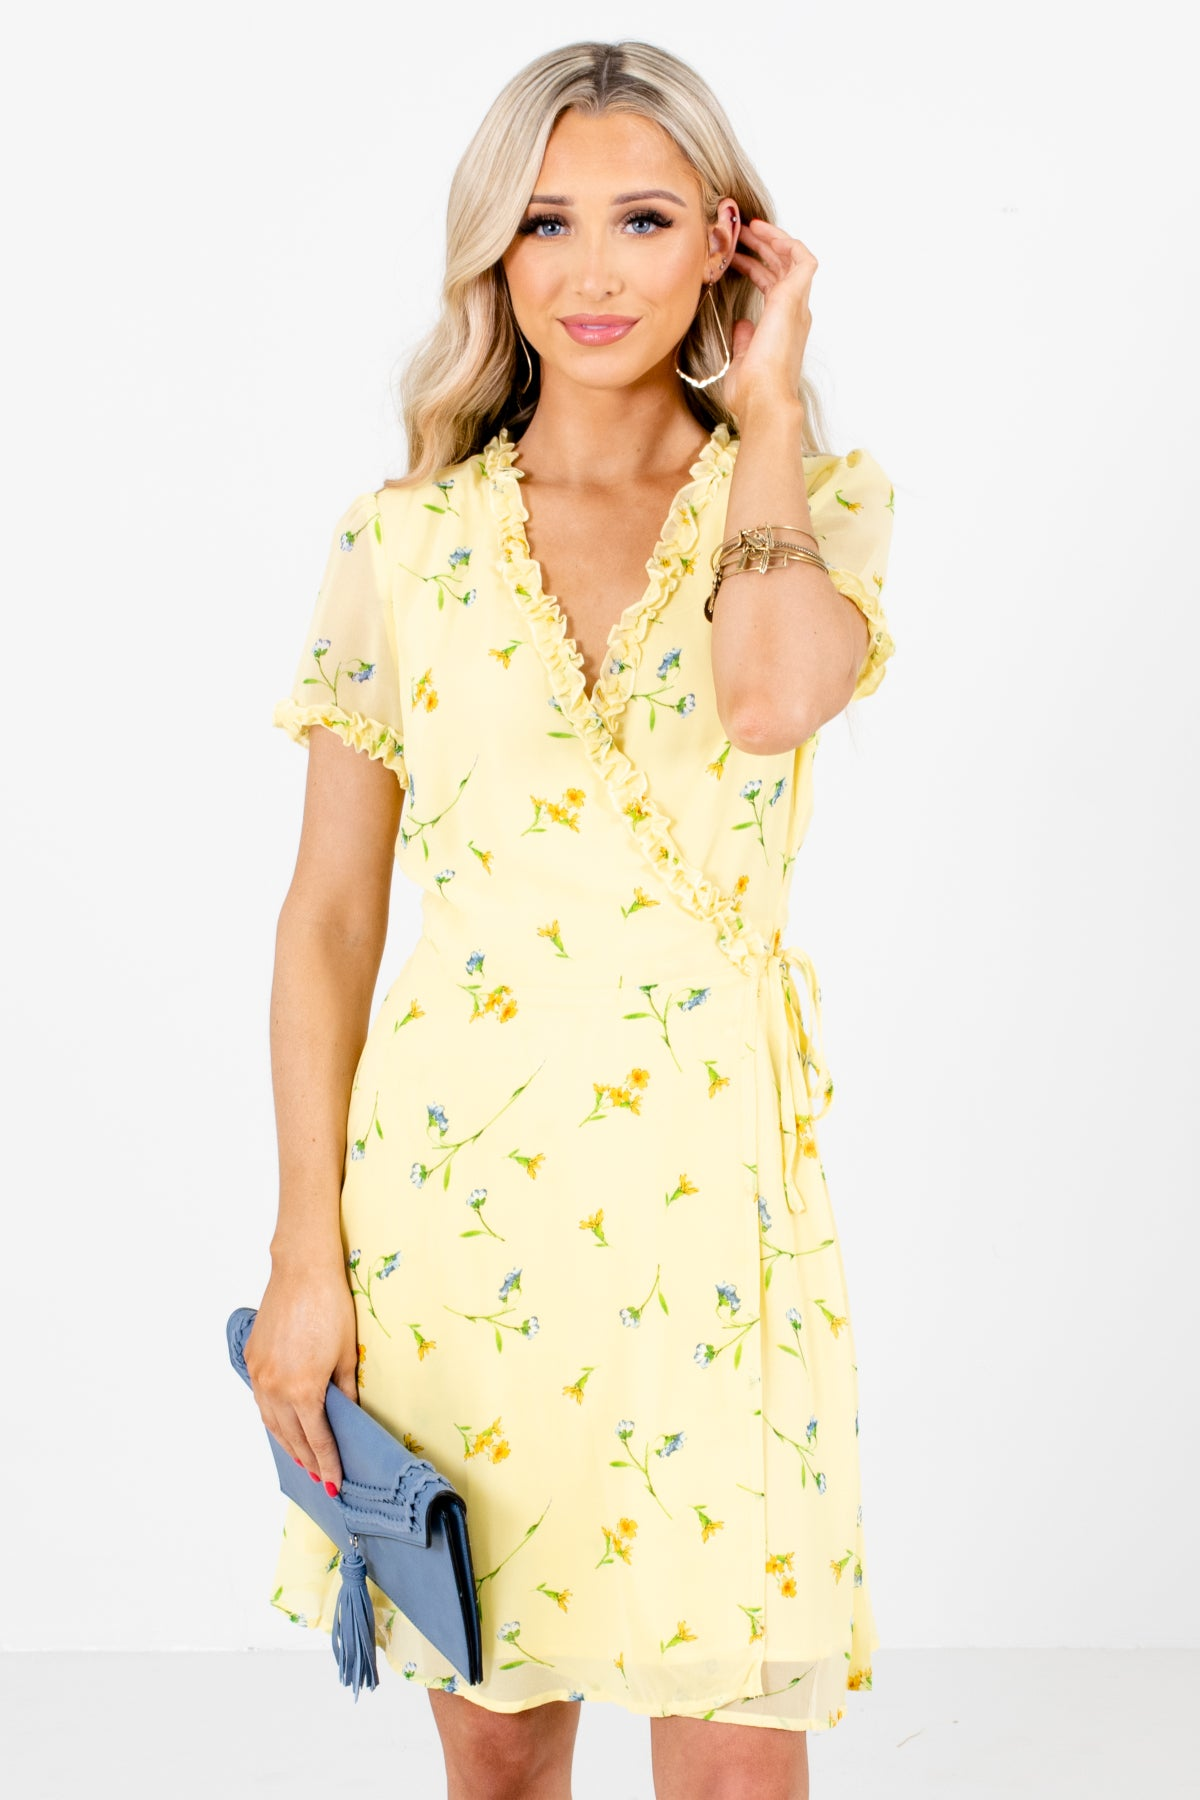 Yellow Multicolored Floral Patterned Boutique Mini Dresses for Women